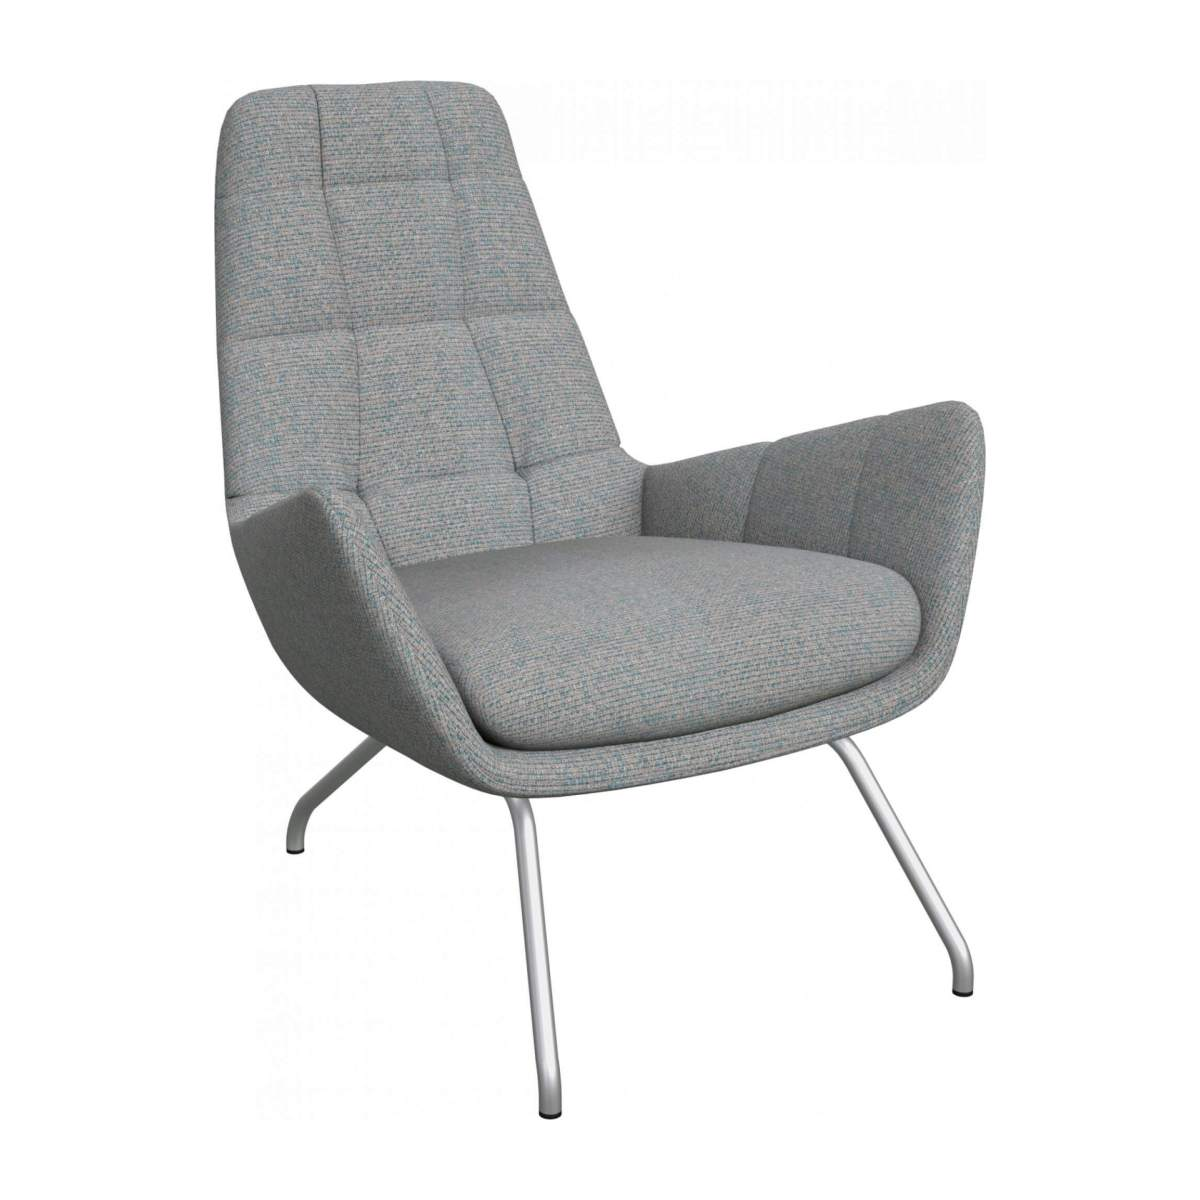 Armchair in Lecce fabric, blue reef with matt metal legs n°2